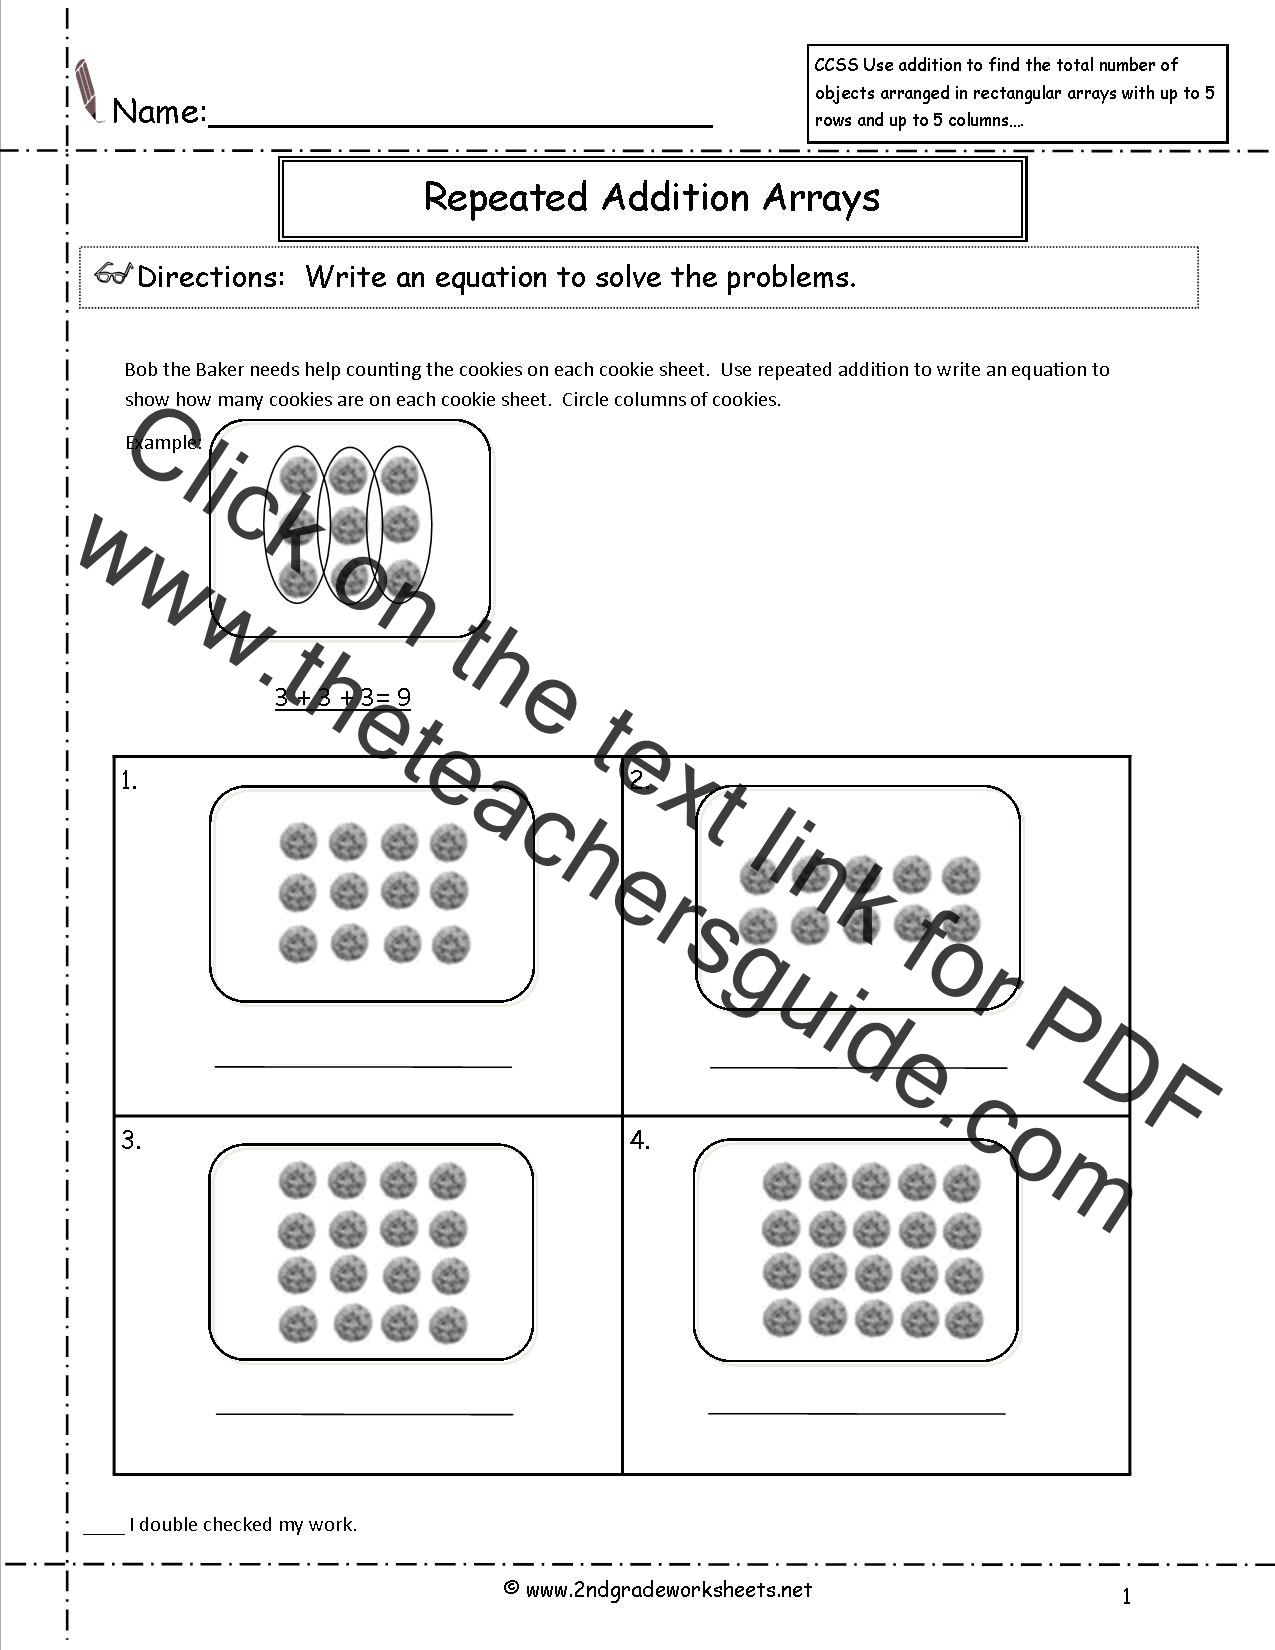 Uncategorized 3rd Grade Common Core Math Worksheets 2nd grade math common core state standards worksheets ccss 2 oa 4 worksheets